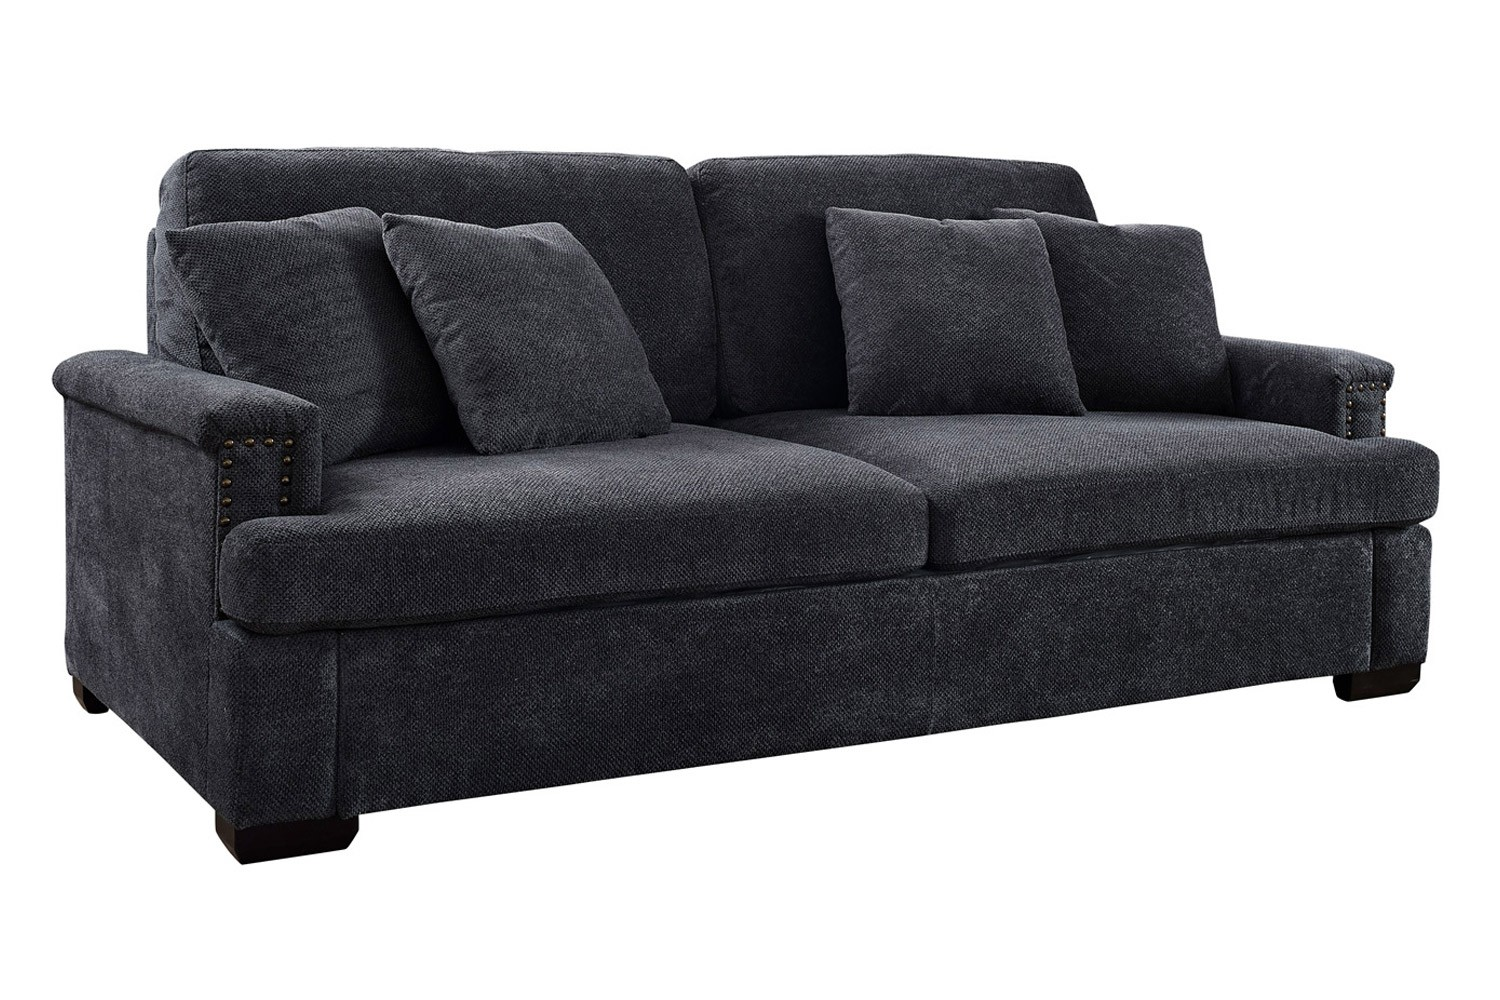 Futons Berlin Shipping Futons To Illinois Futon Sofa Beds Delivered To